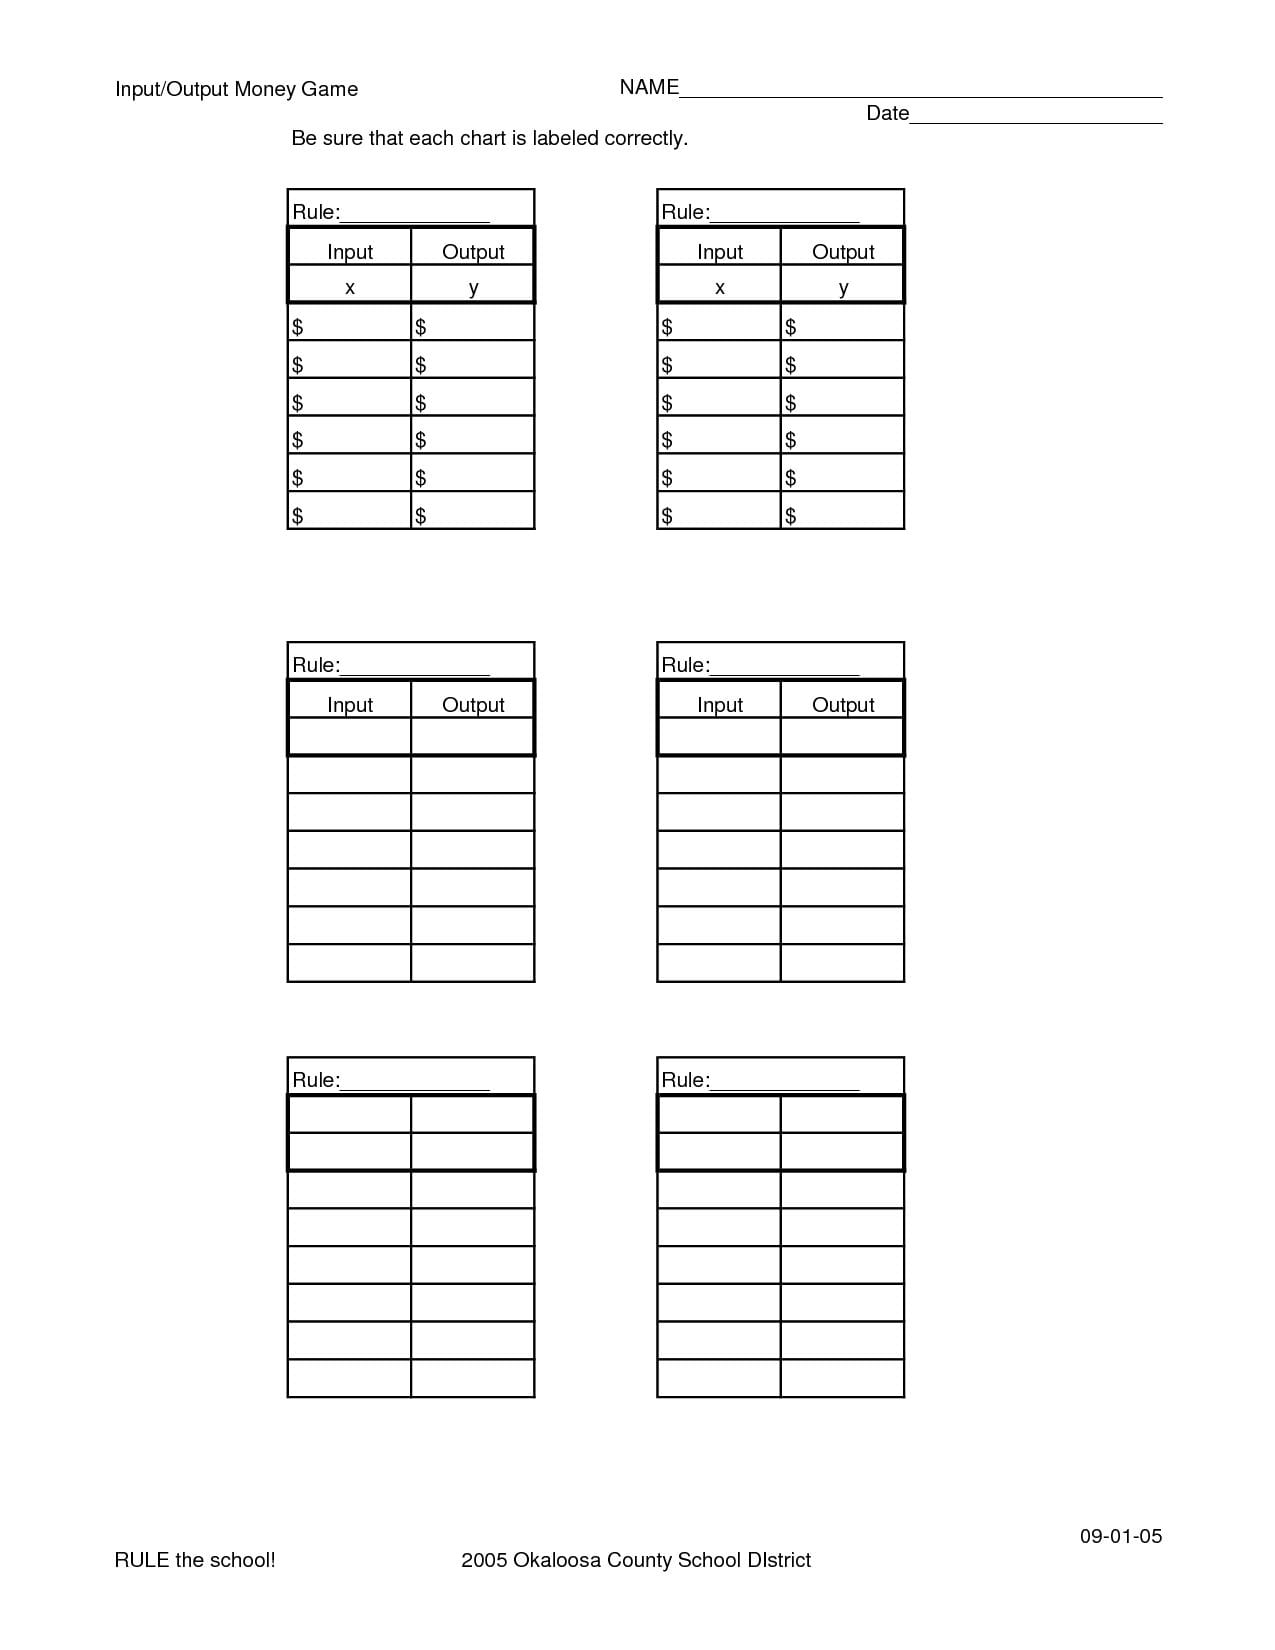 Input Output Tables Worksheet